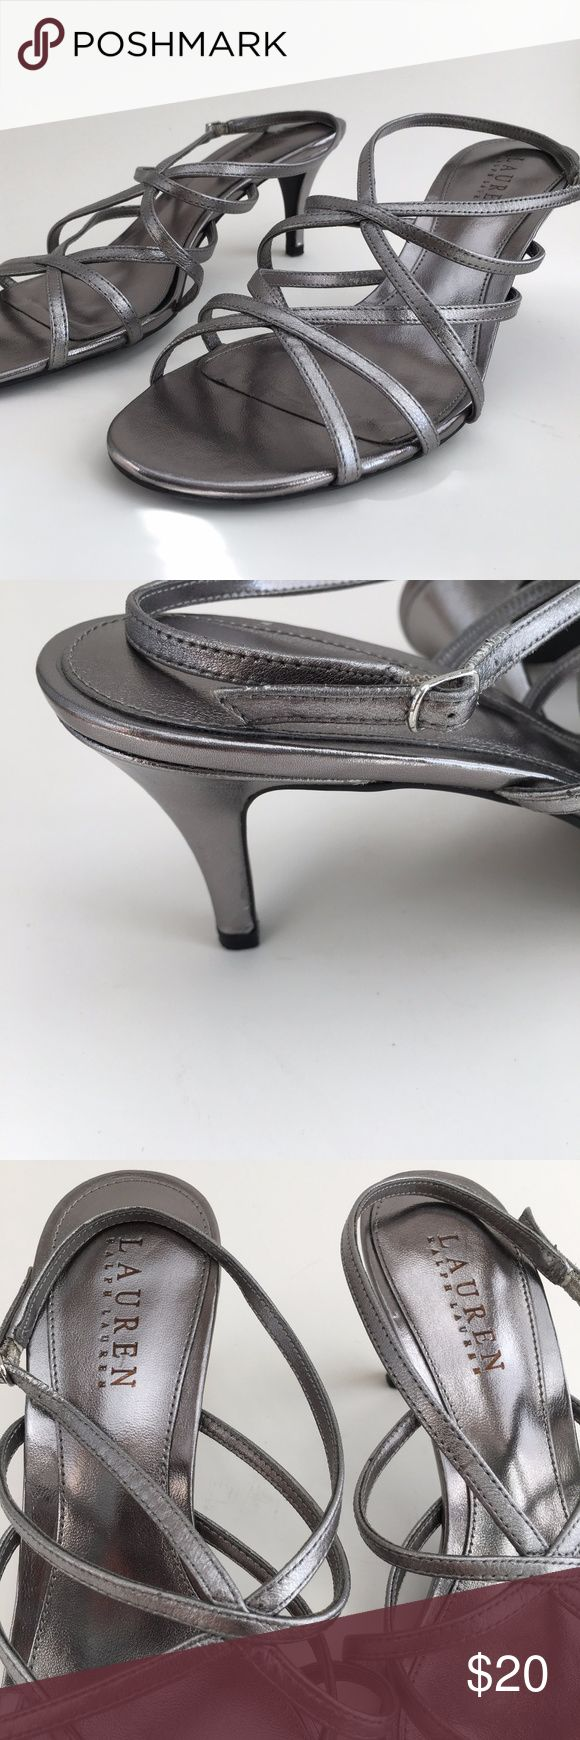 Lauren Ralph Lauren Neve Silver Strappy Heels Very, very gently worn strappy sandals from Ralph Lauren. No toe marks or impressions. Looks brand new on top. As seen in photos, even the sole looks clean and barely worn. The only flaw, which is visible in the last photo, is a small nick at the bottom of one heel. Lauren Ralph Lauren Shoes Heels